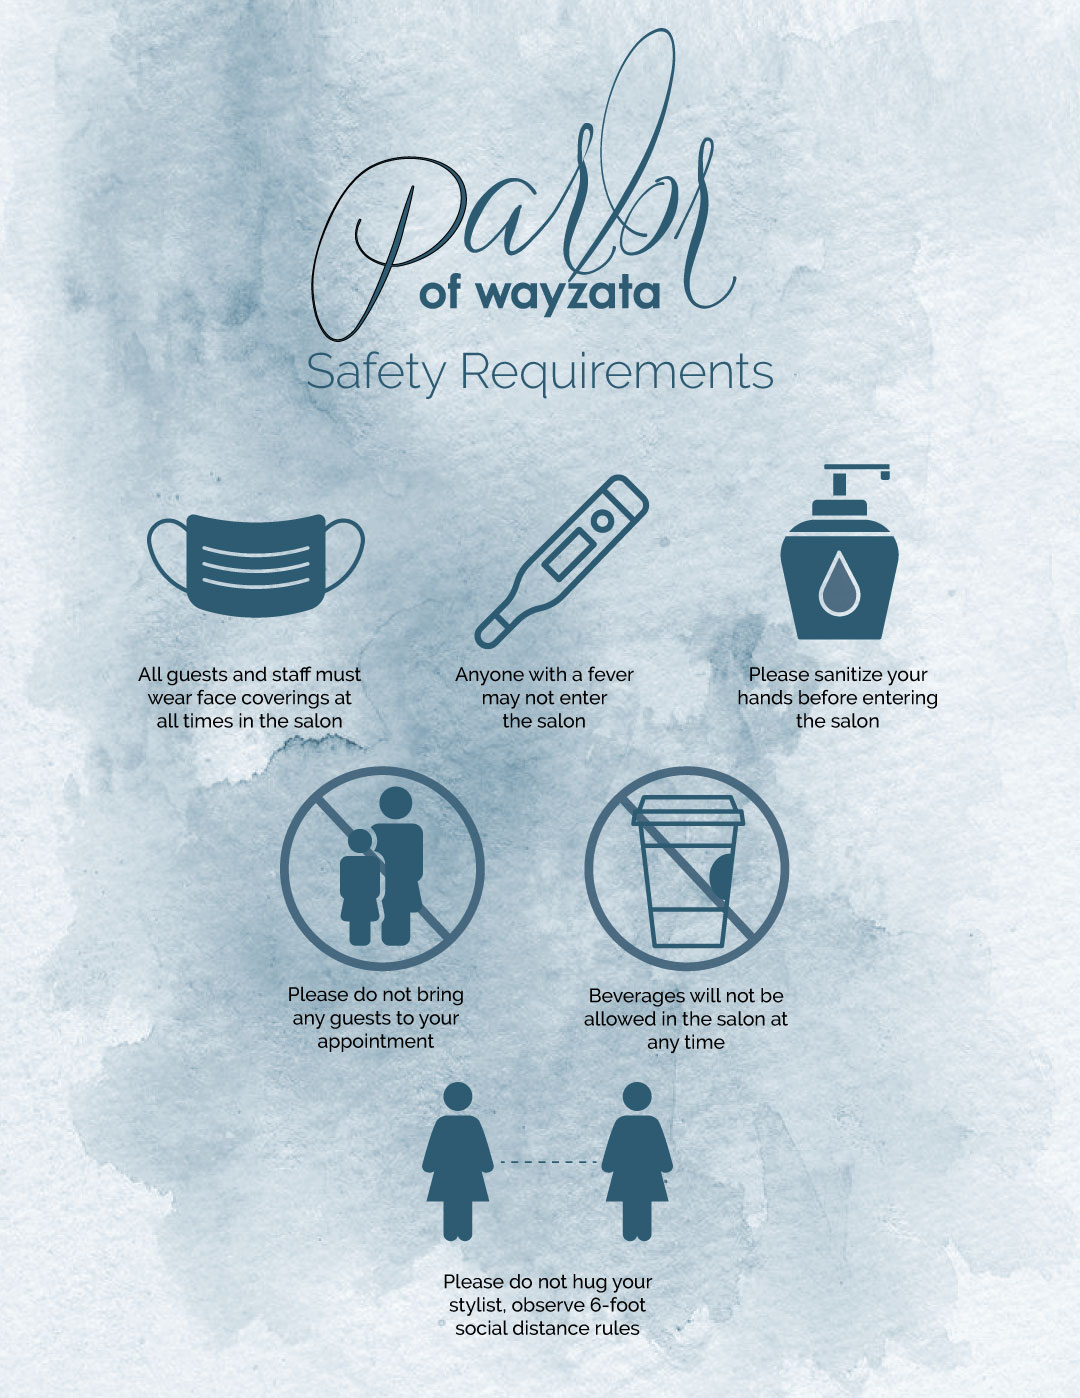 UPdated Safety Requirements